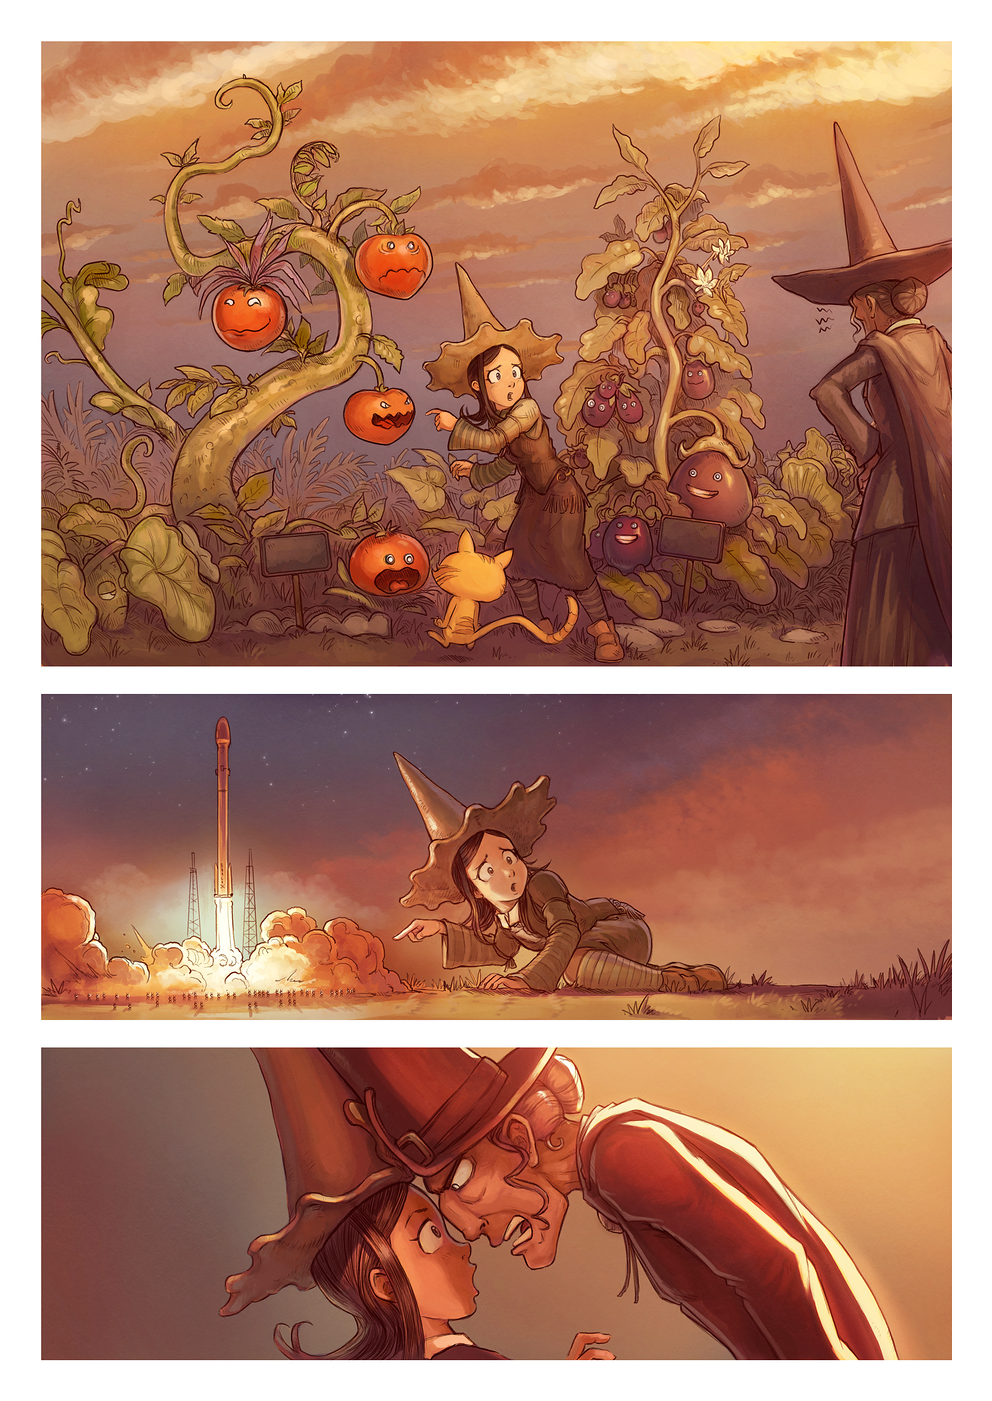 pkk19/gfx_Pepper-and-Carrot_by-David-Revoy_E19P02.png